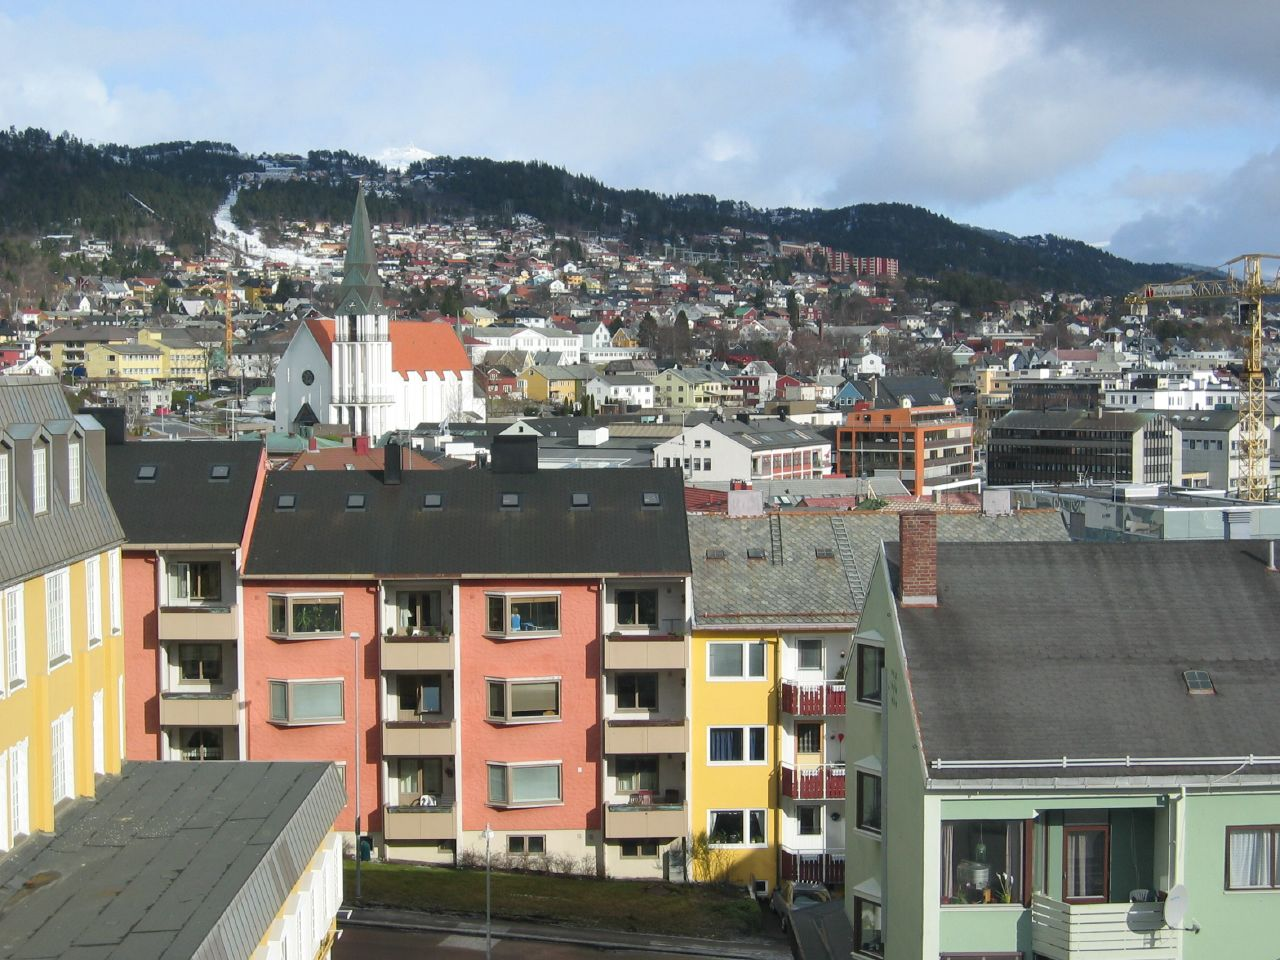 File:View of Molde.jpg